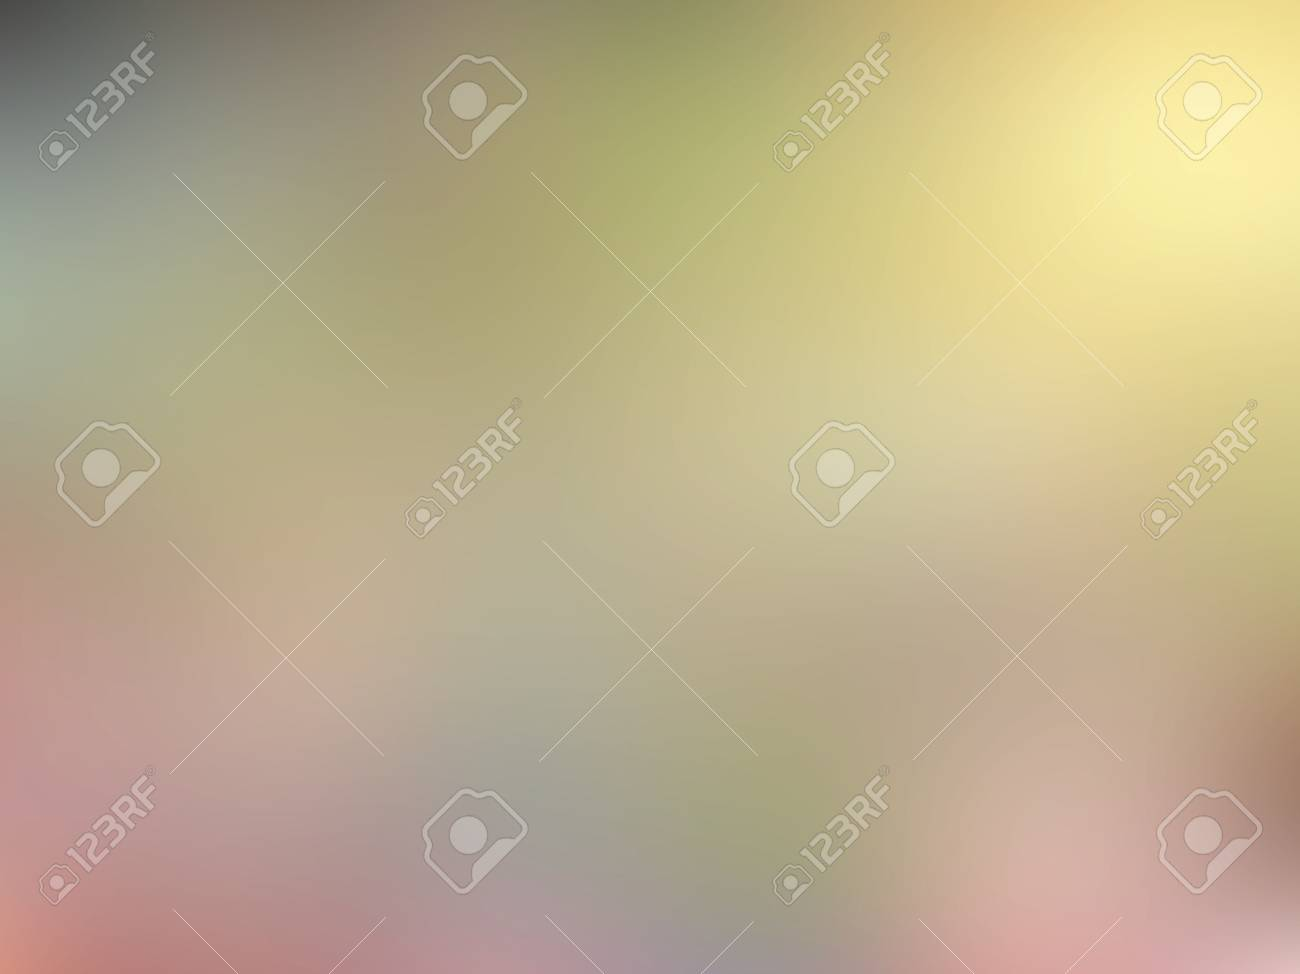 Abstract Blurred Brown Pink Green And Yellow Colored Background